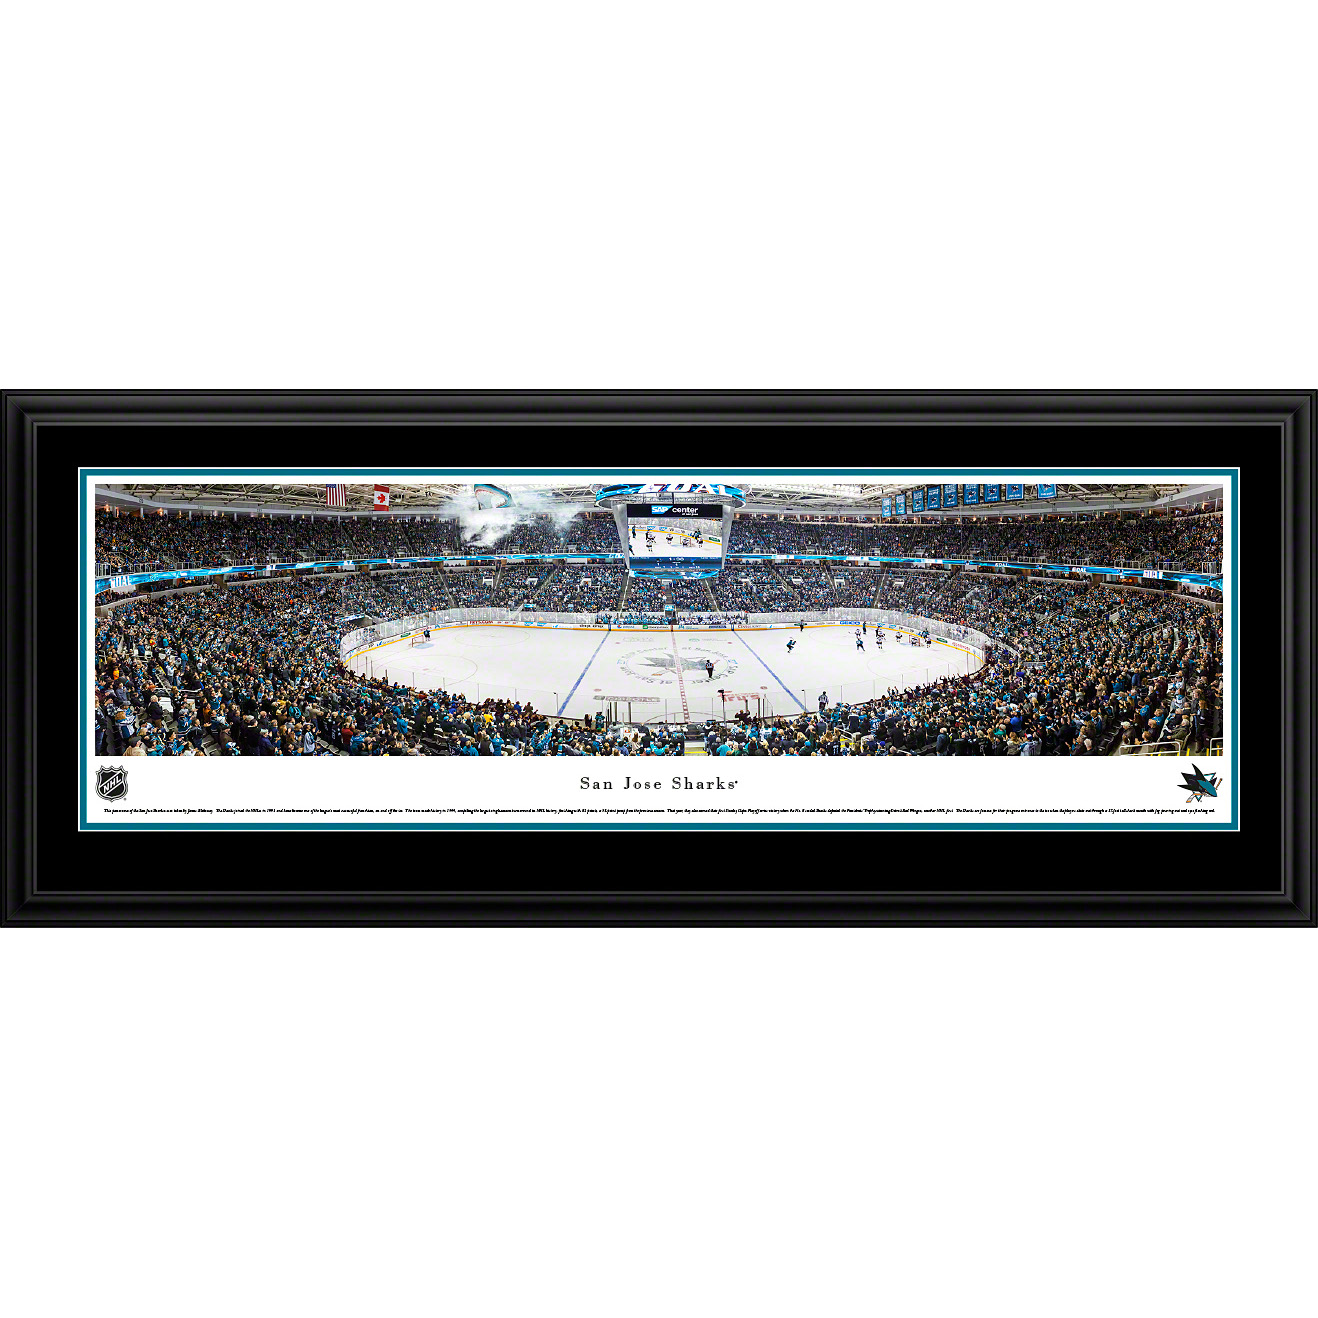 "San Jose Sharks 18"" x 44"" Deluxe Framed Panoramic - No Size"